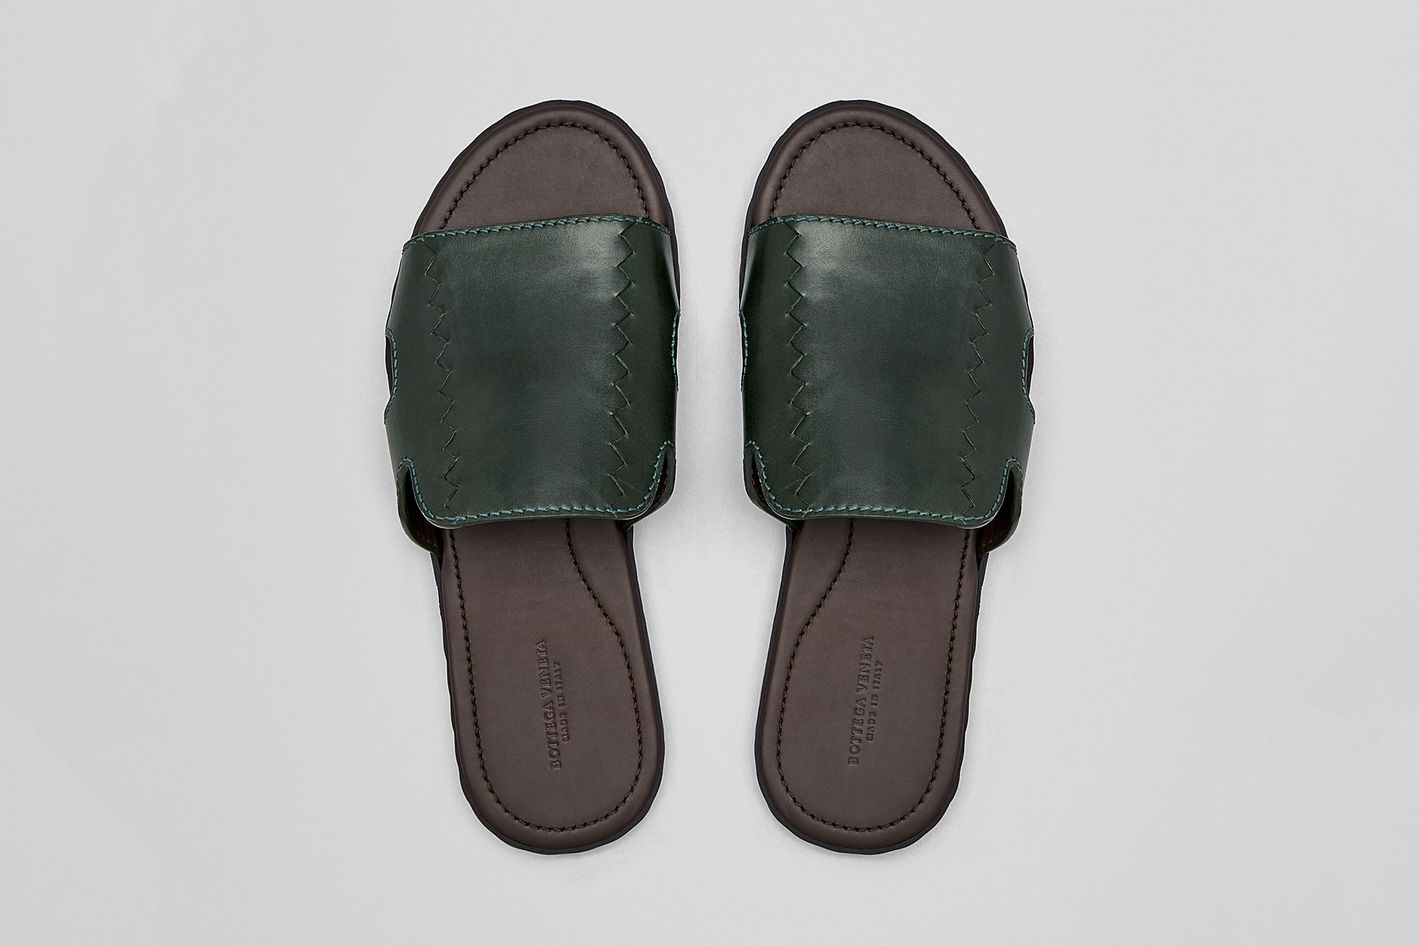 a1b48363c44c 29 Stylish Men s Sandals to Wear This Summer